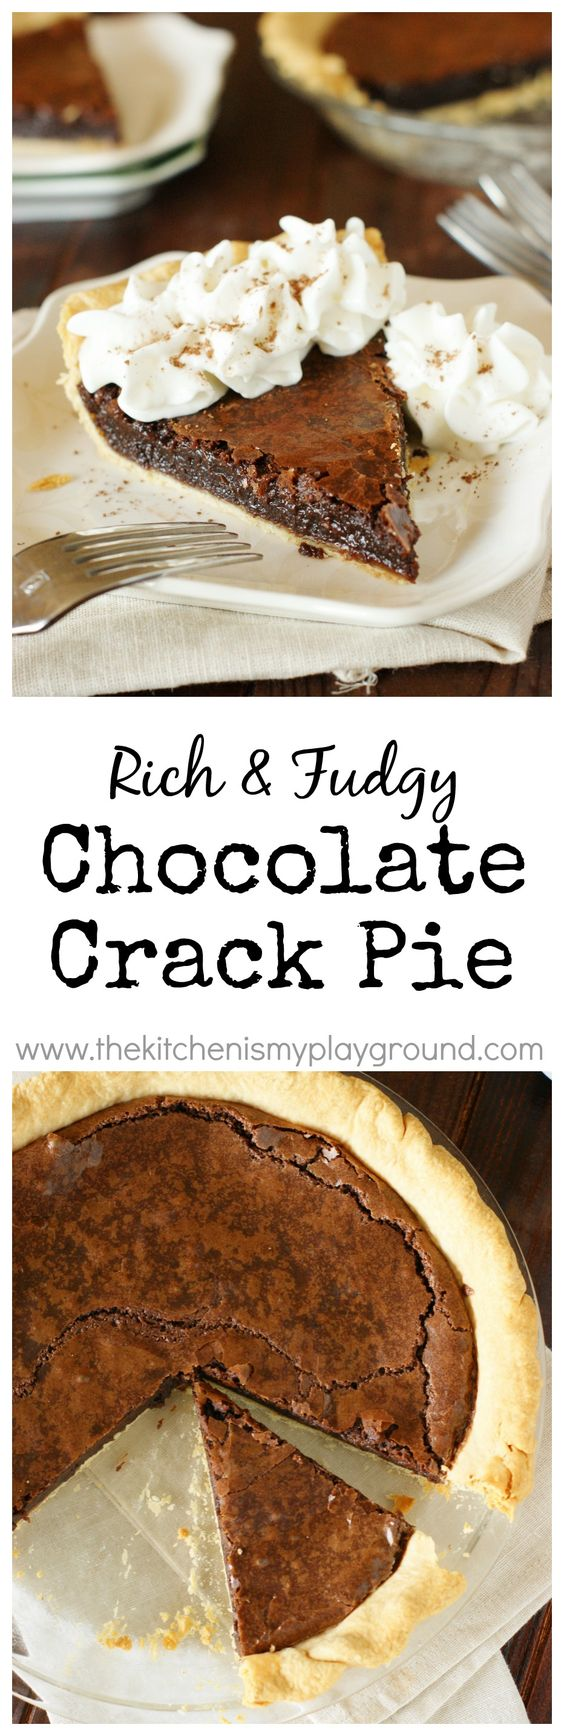 Chocolate crack, Crack pie and Gooey brownies on Pinterest